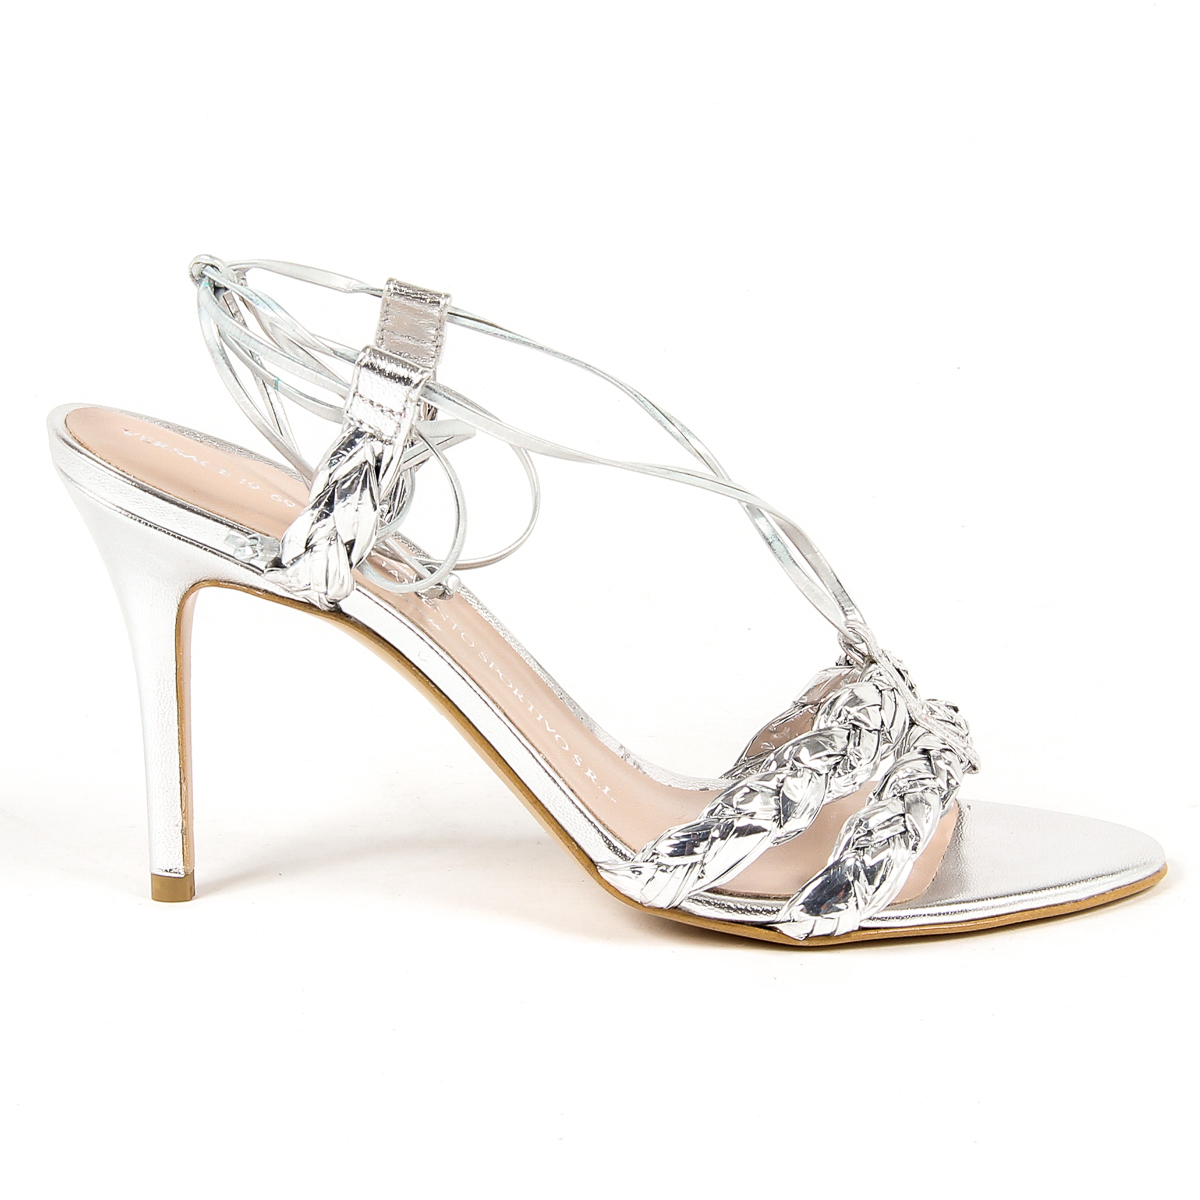 Primary image for V 1969 Italia Womens Sandal Silver LETITIA